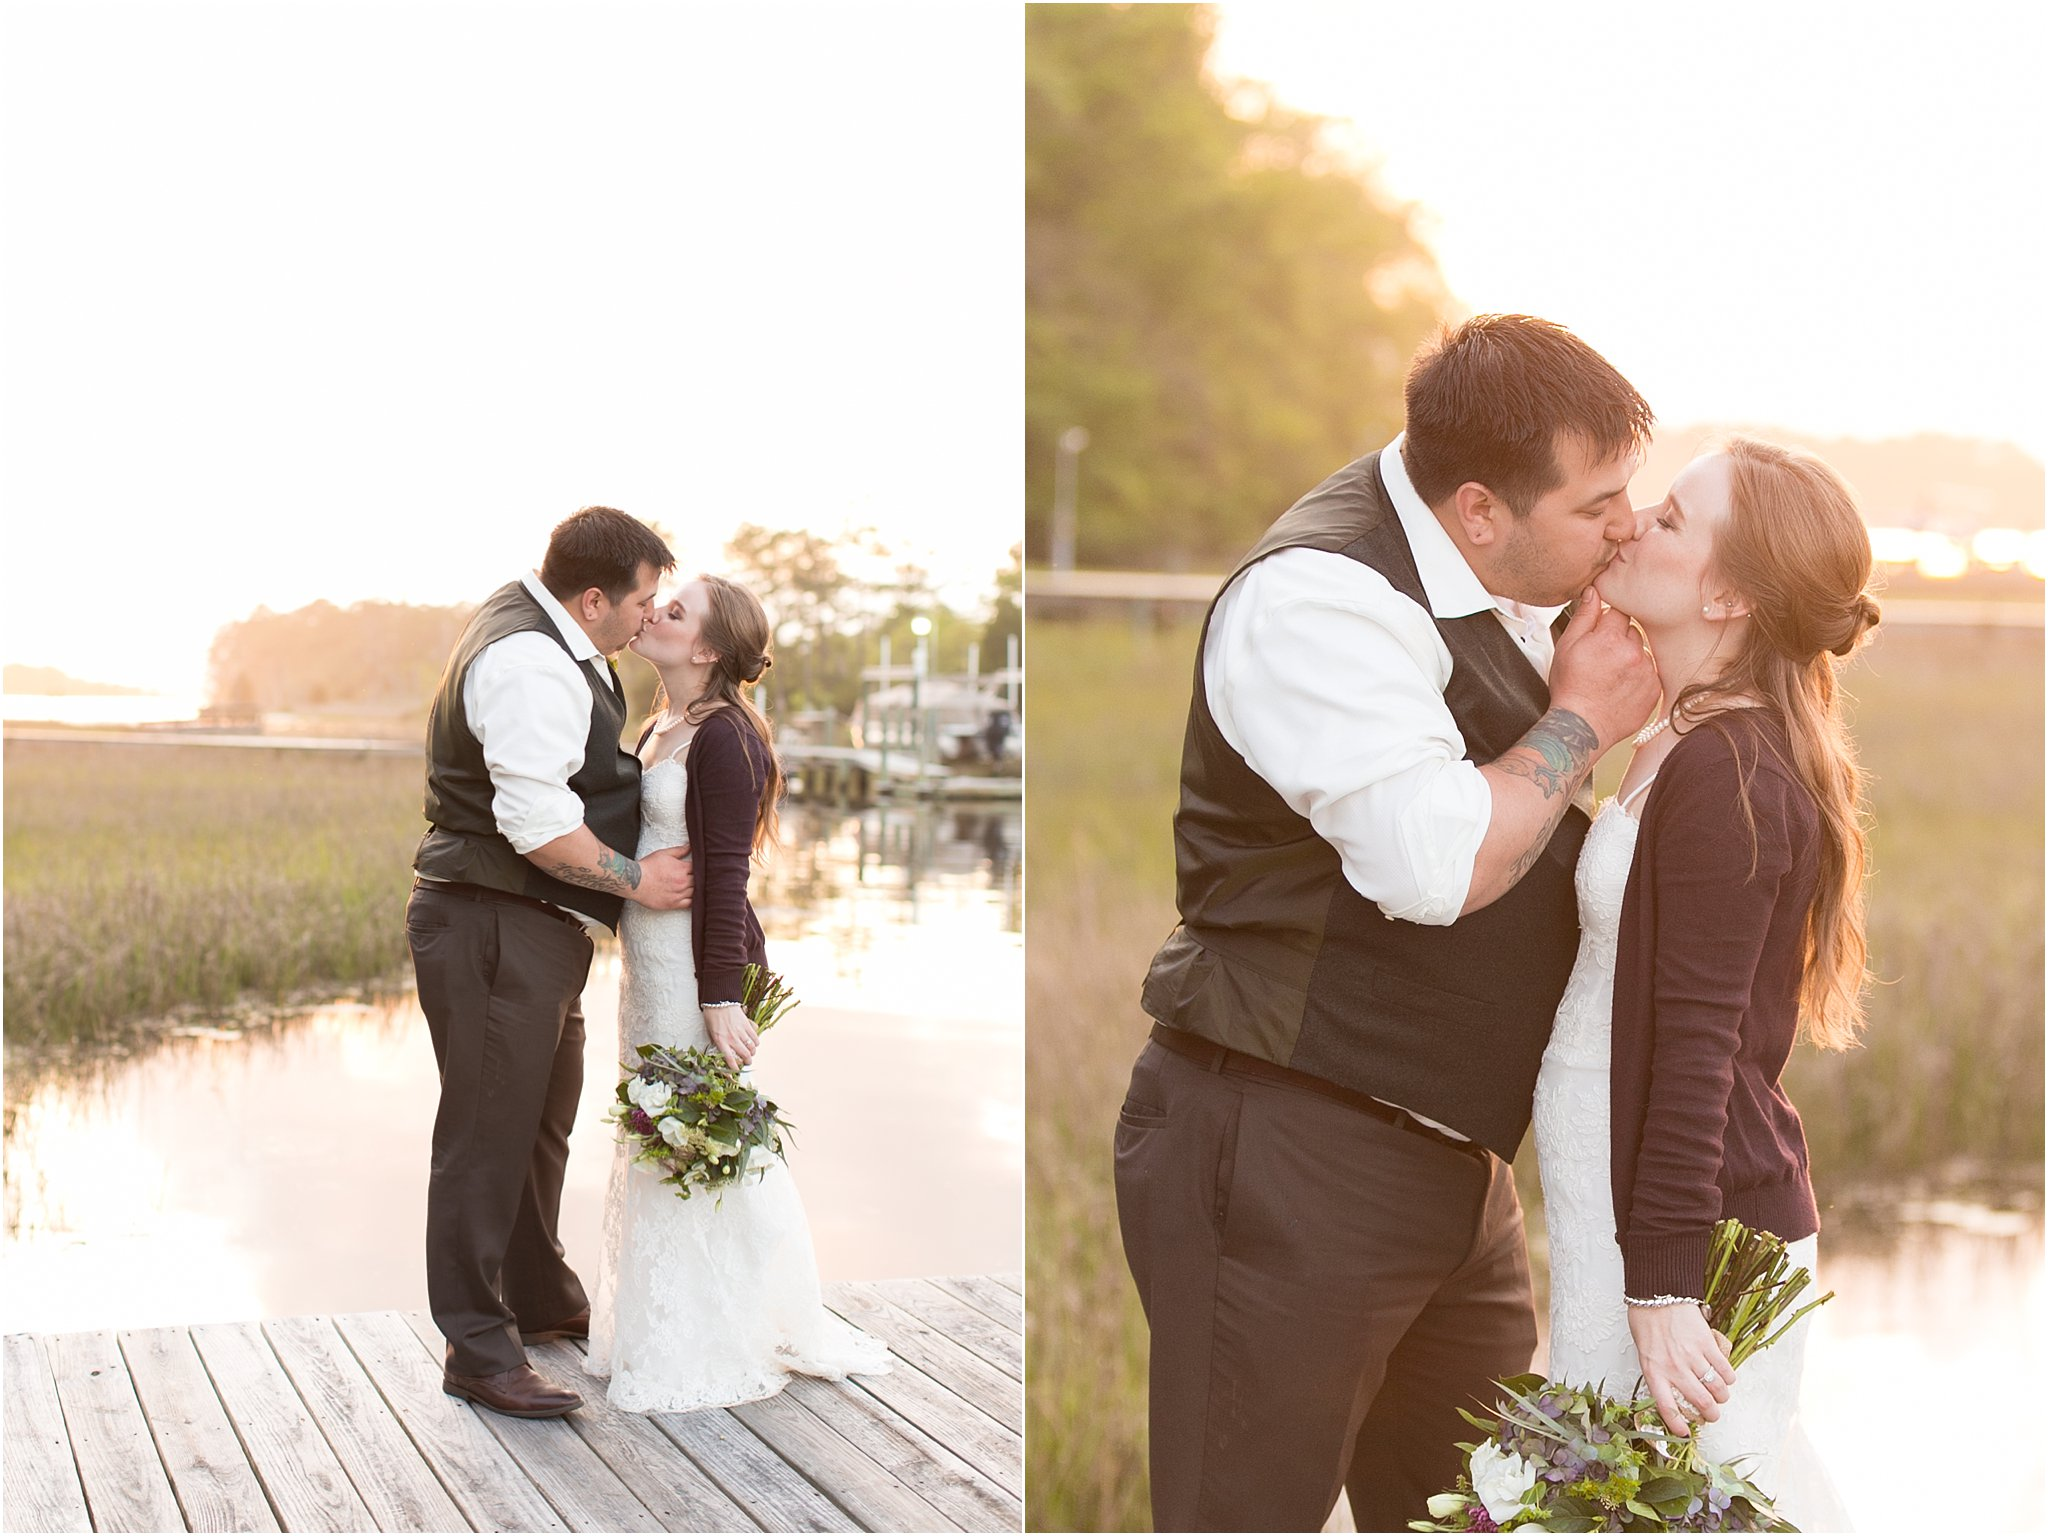 jessica_ryan_photography_virginia_virginiabeachwedding_bayislandvirginiabeach_backyardwedding_waterfrontwedding_intimatewedding_vintagewedding_1605